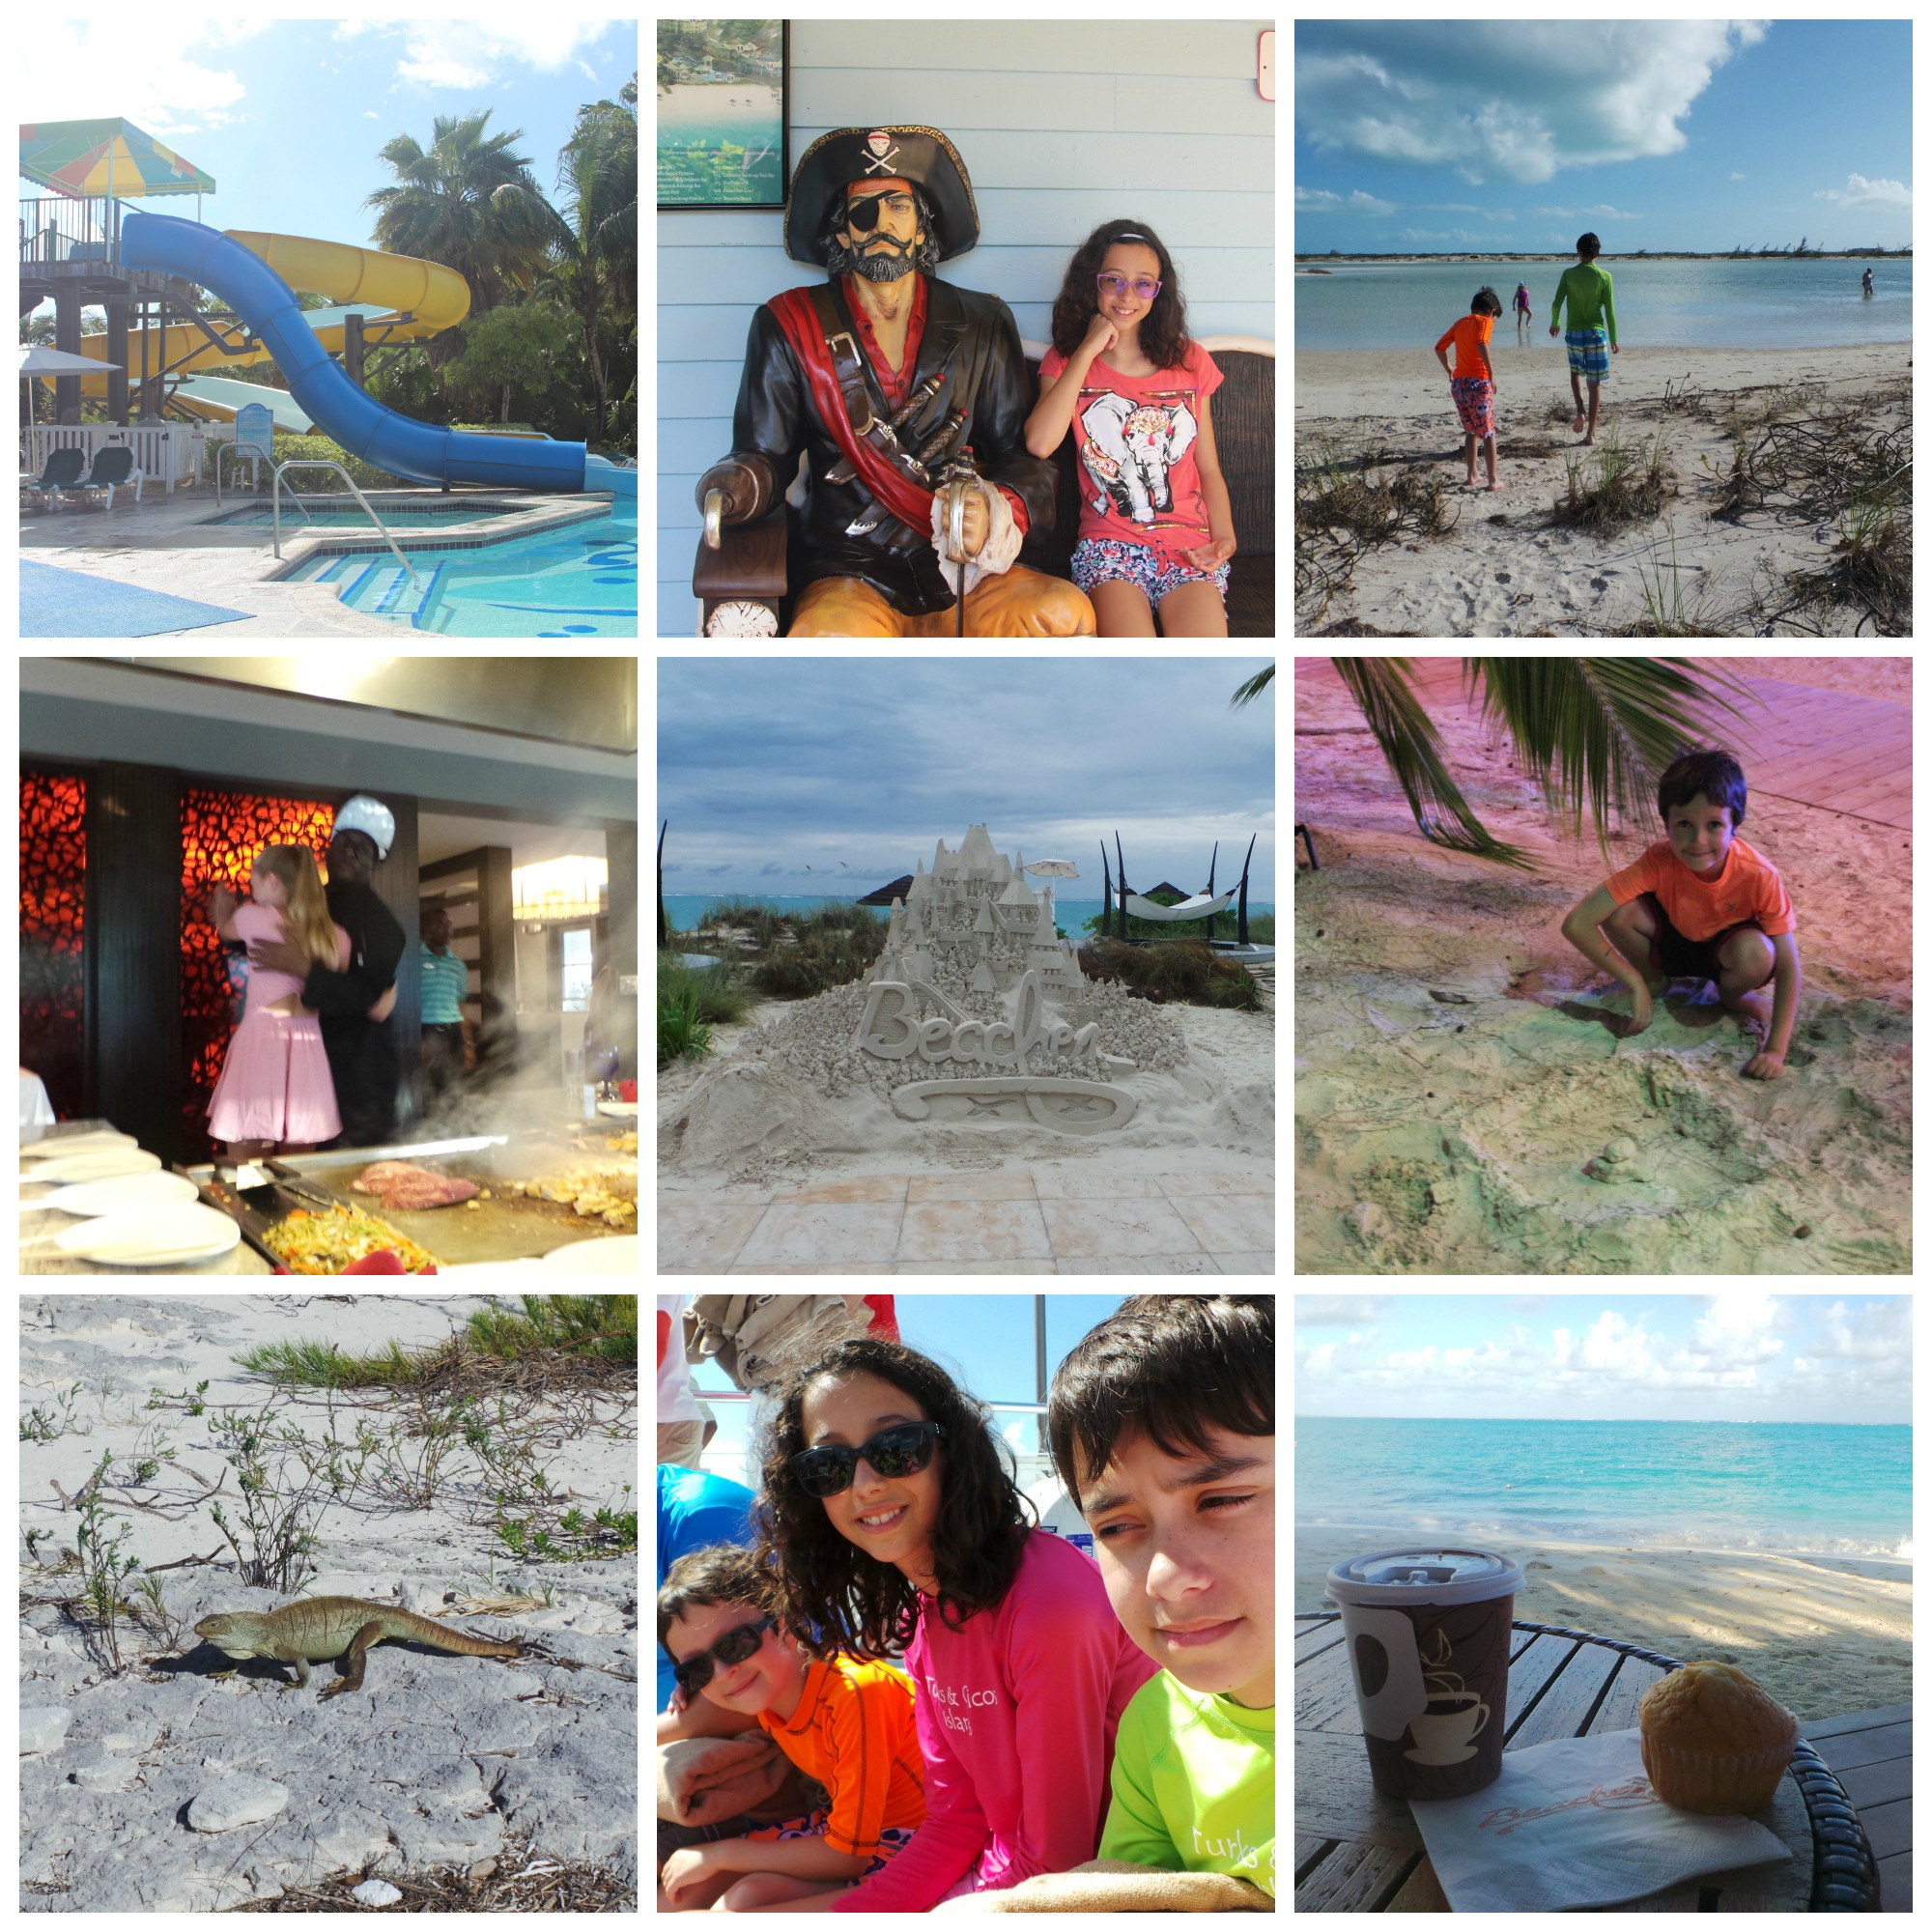 60 things to do with your family at Beaches Turks and Caicos #BeachesMoms